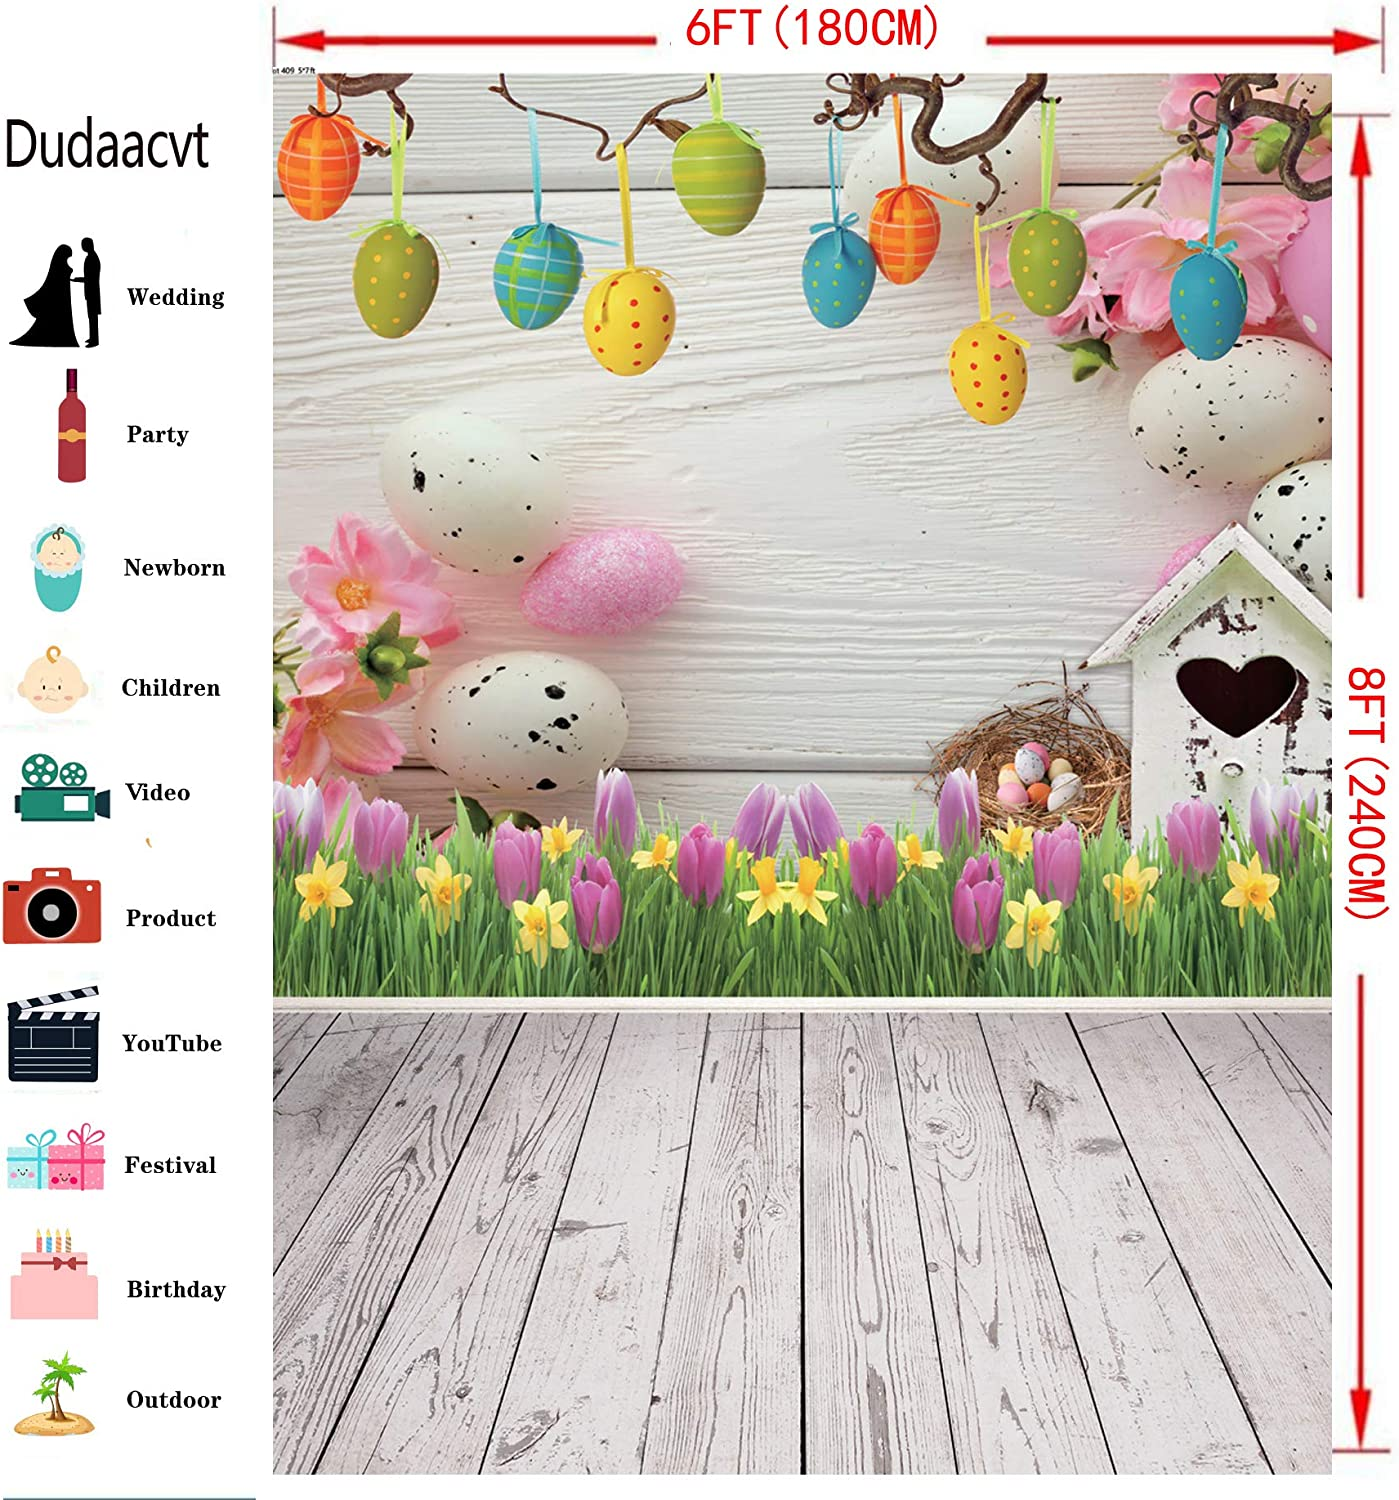 LB 10x8ft Spring Easter Backdrop Vinyl Colorful Eggs White Flower Green Grass Backdrops for Photography Kids Baby Shower Birthday Party Portrait Photo Booth Studio Props